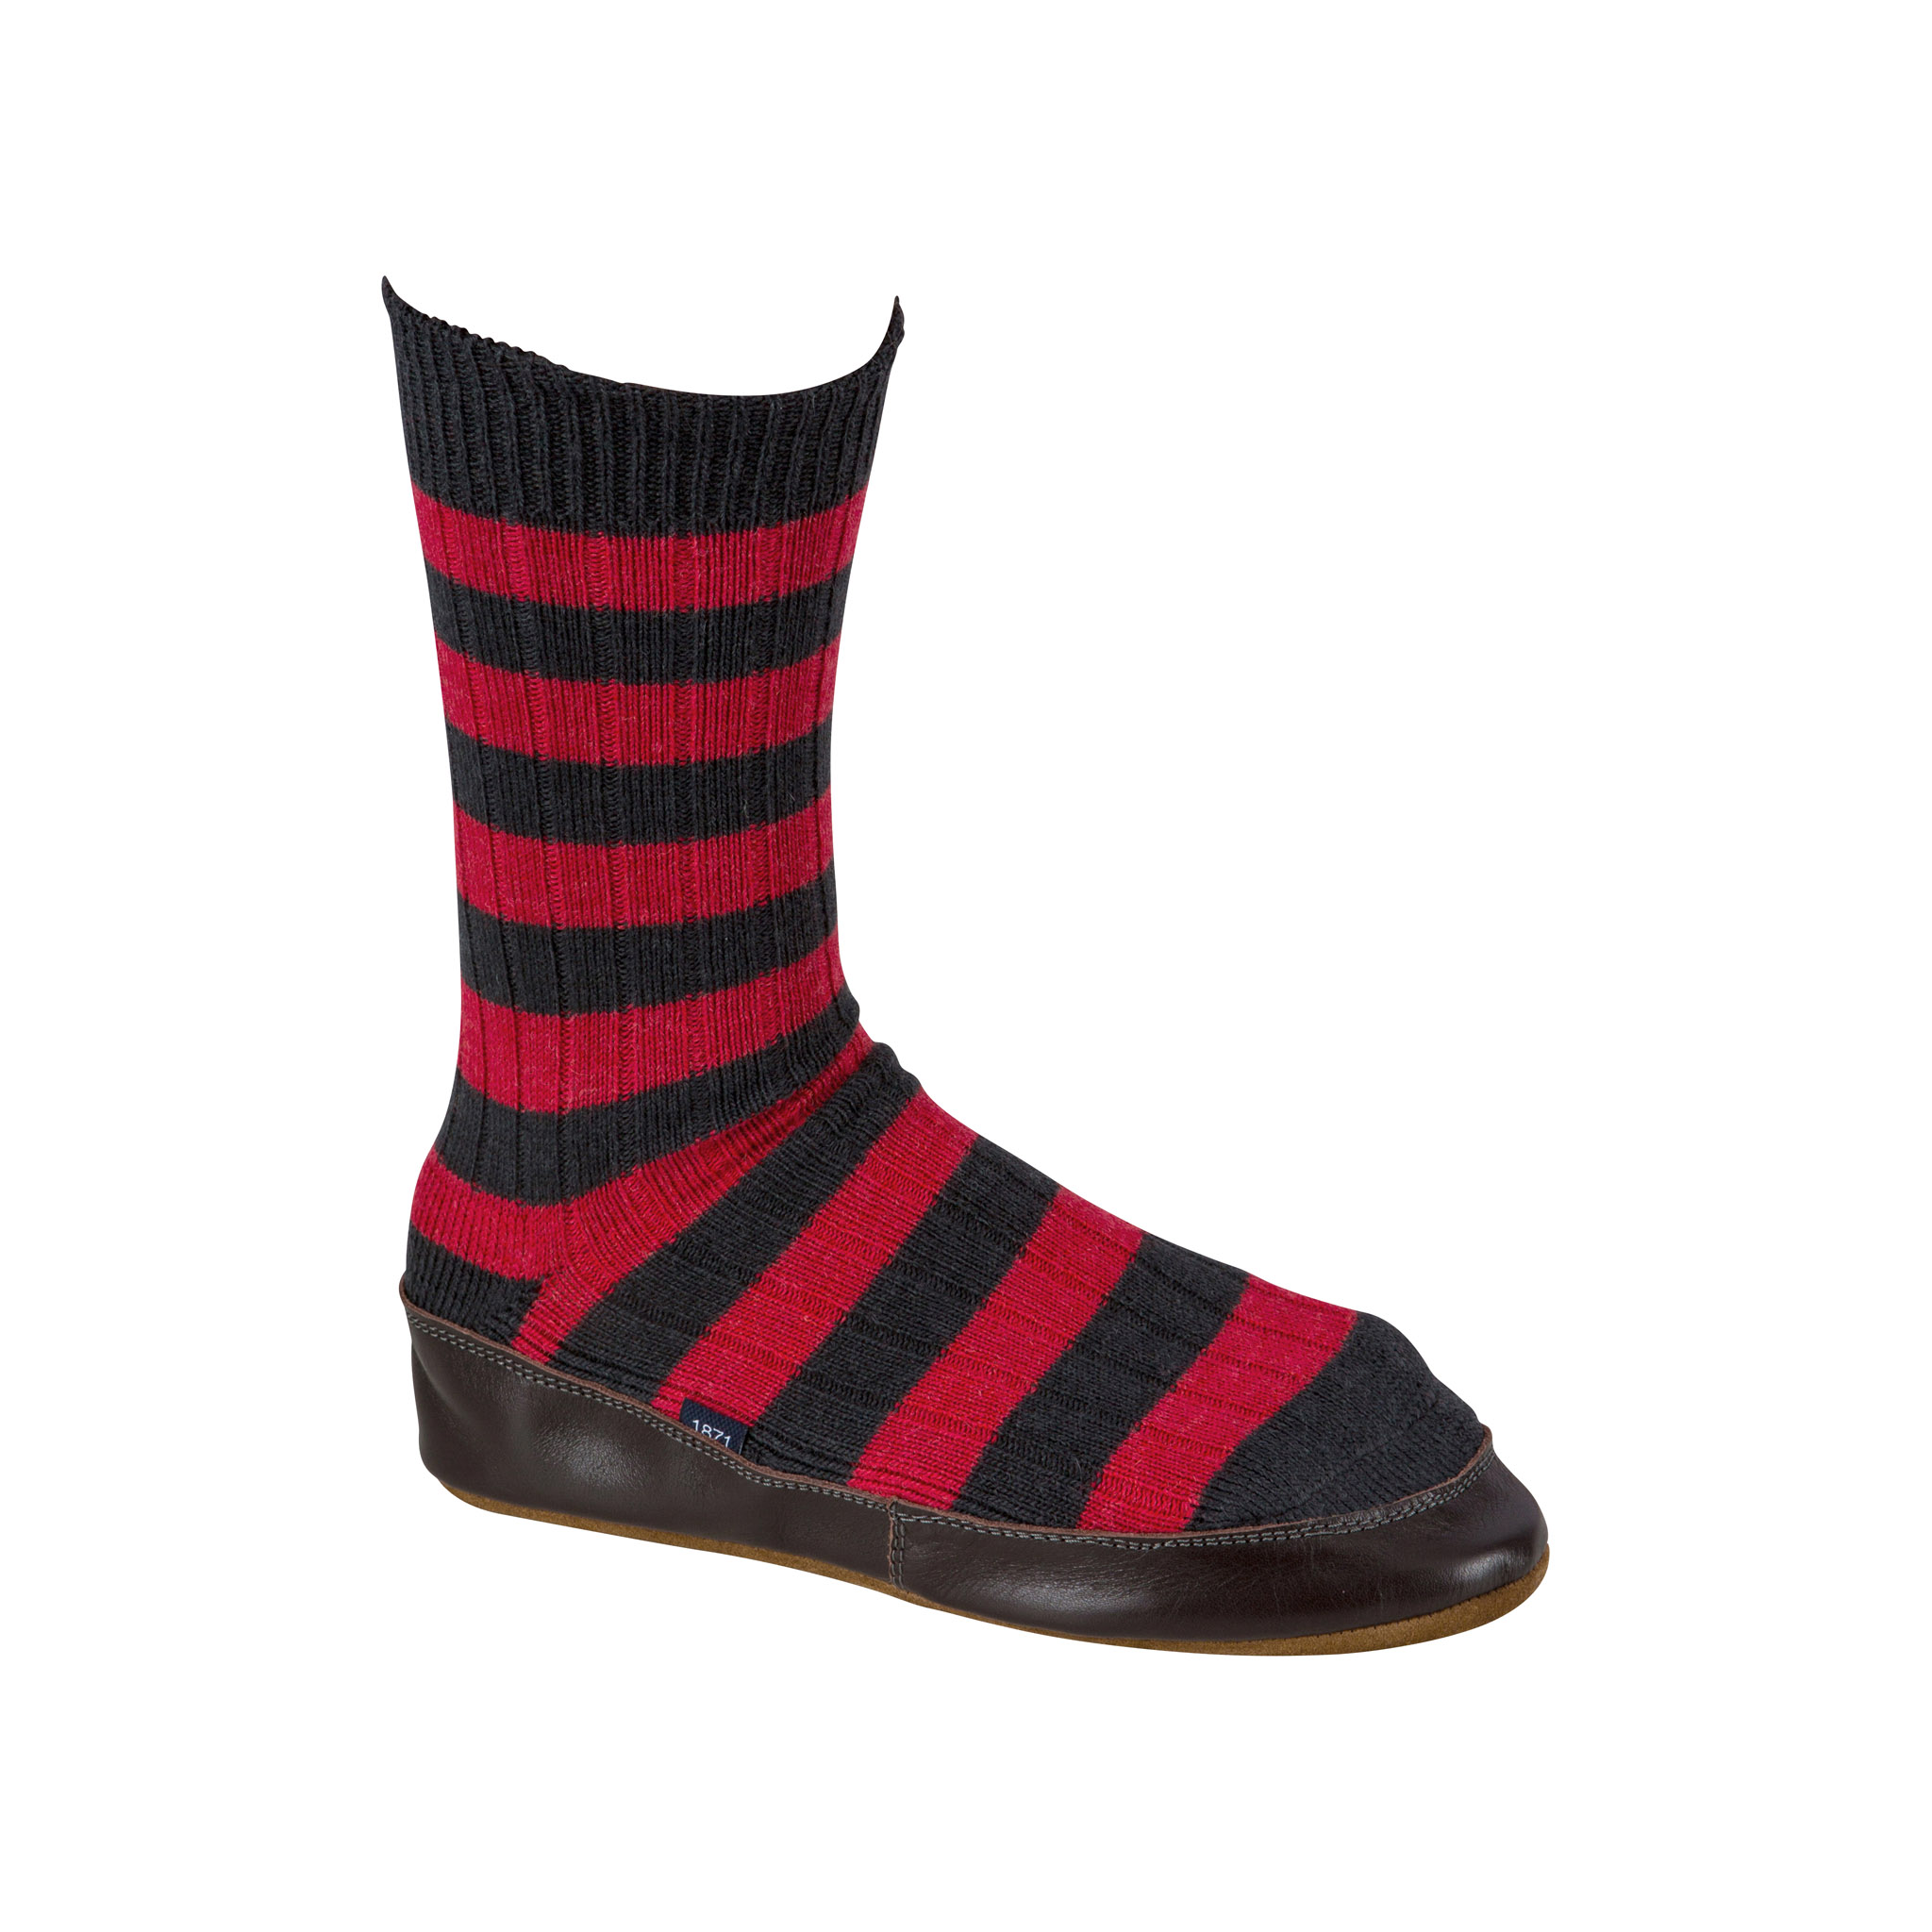 Slipper Sock black and red stripe